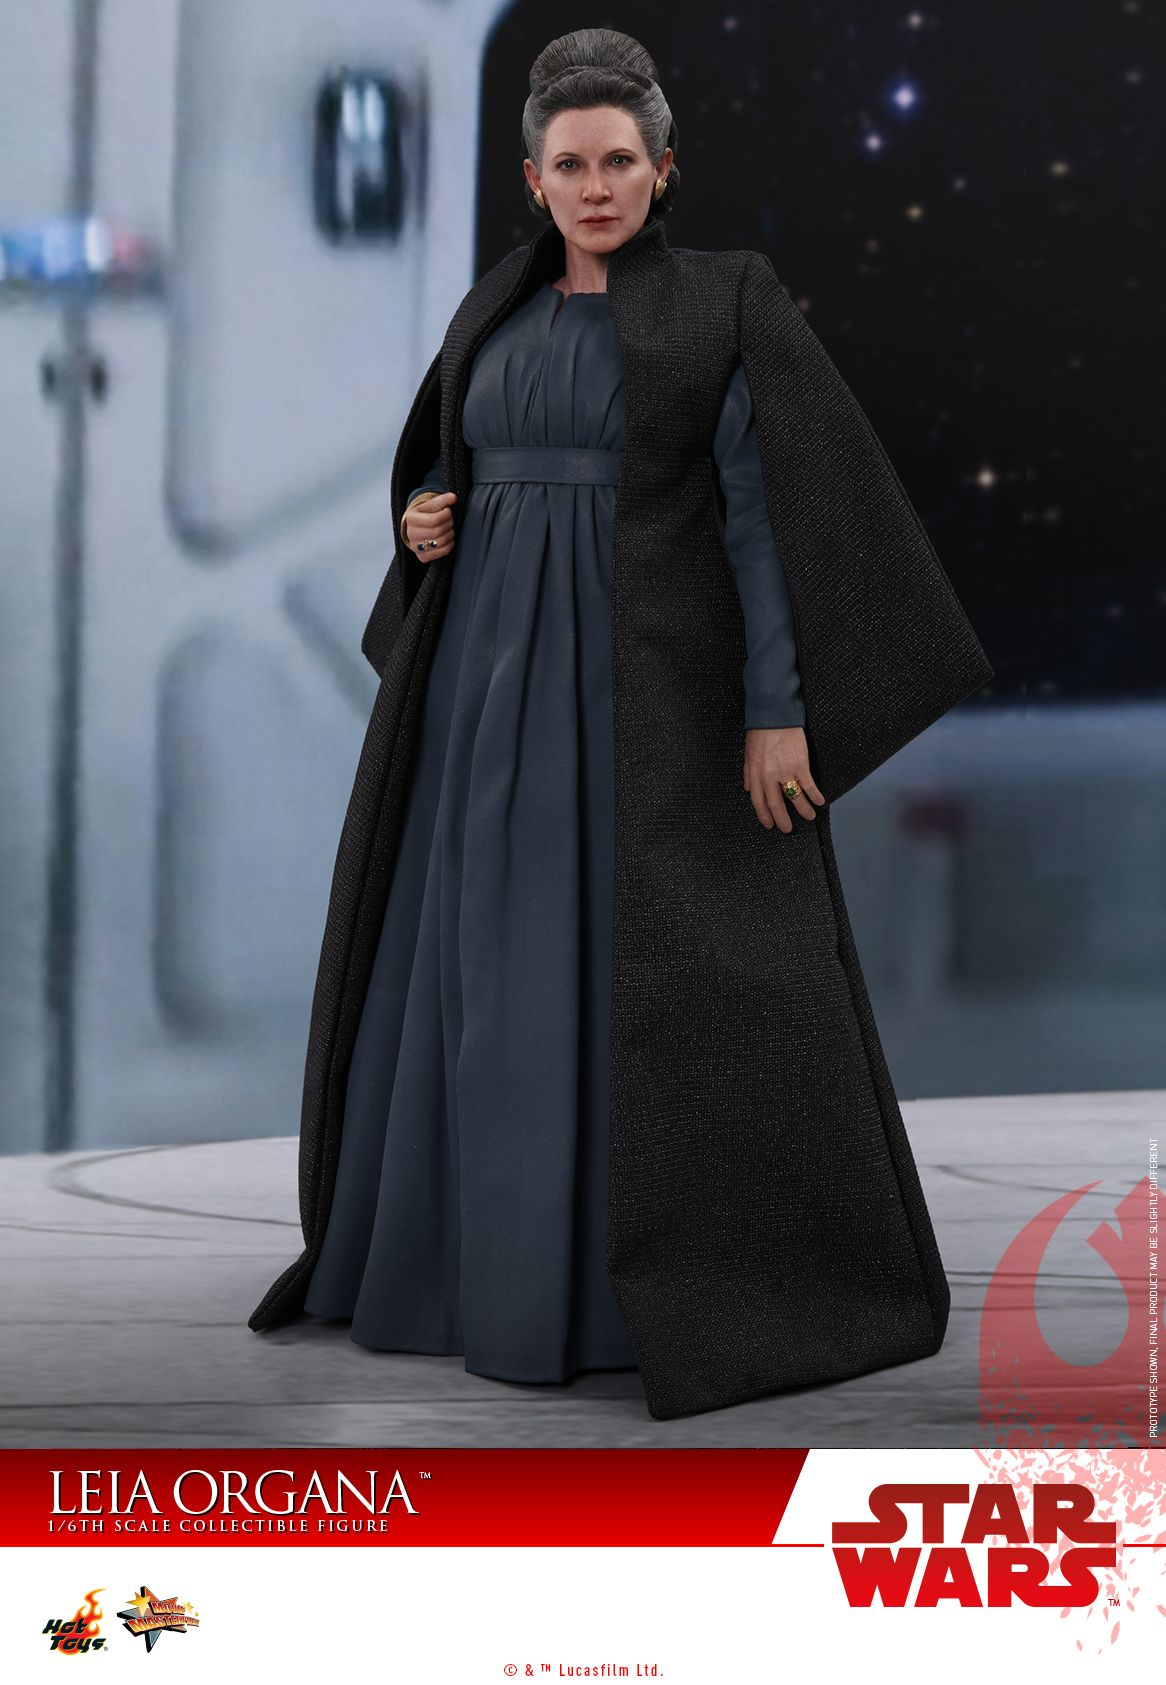 Leia Organa The Last Jedi Hot Toy